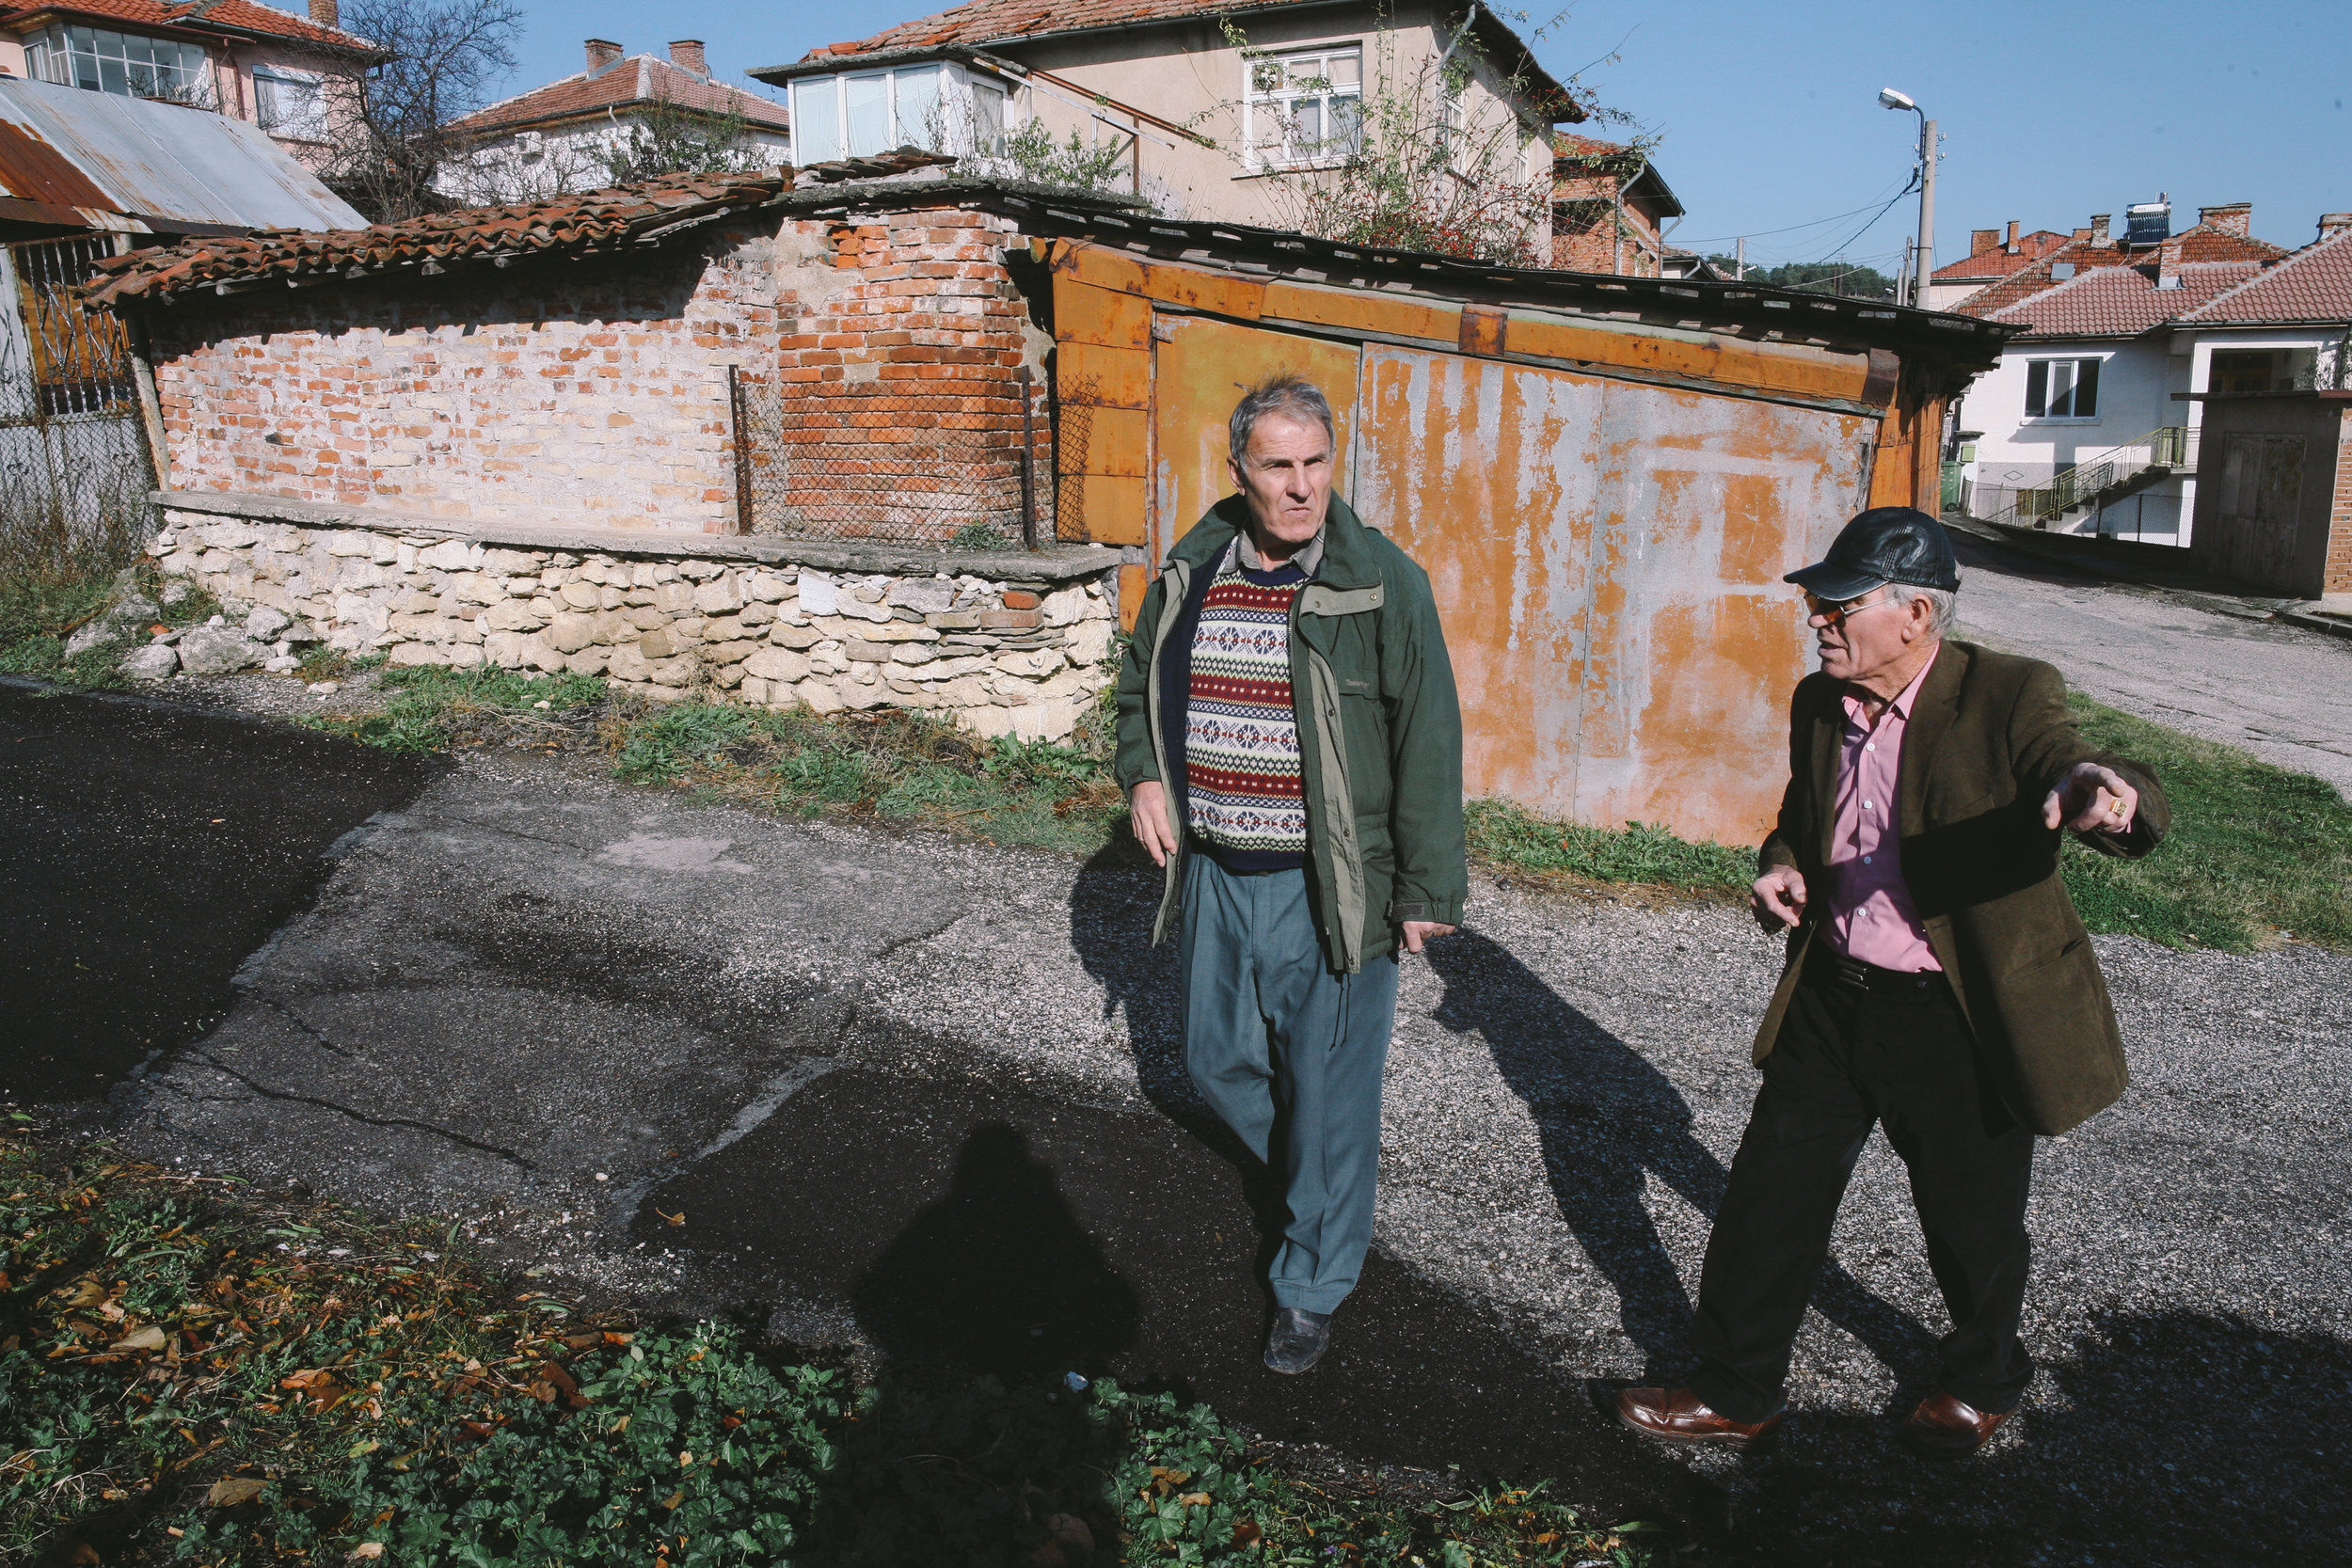 O  rtakio: A Former Greek Town in Bulgaria  -  As a result of WWI & nationalism, indigenous Greeks of Ortakio (present-day Bulgaria) were forced to leave in 1913. Learn about this former community and the last Greek family remaining there today.